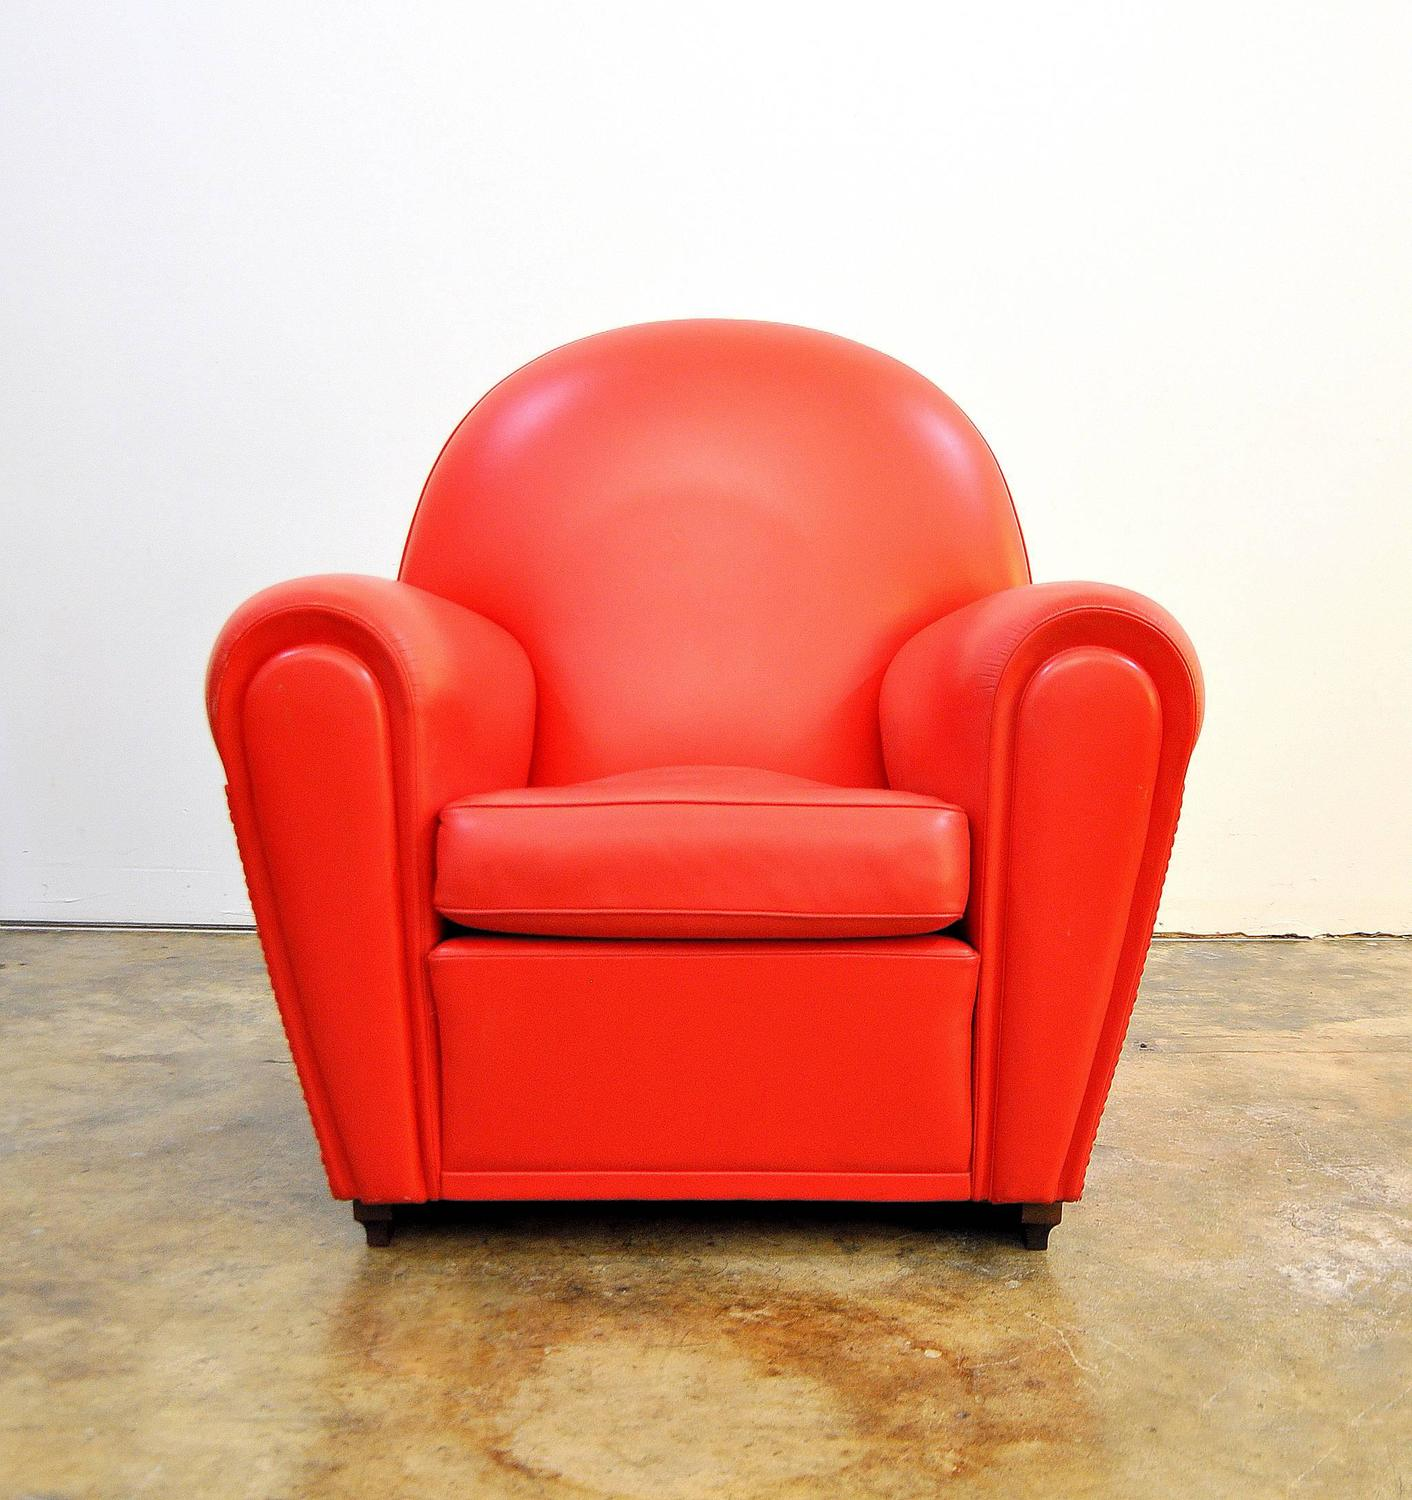 red club chair press back poltrona frau vanity fair leather at 1stdibs